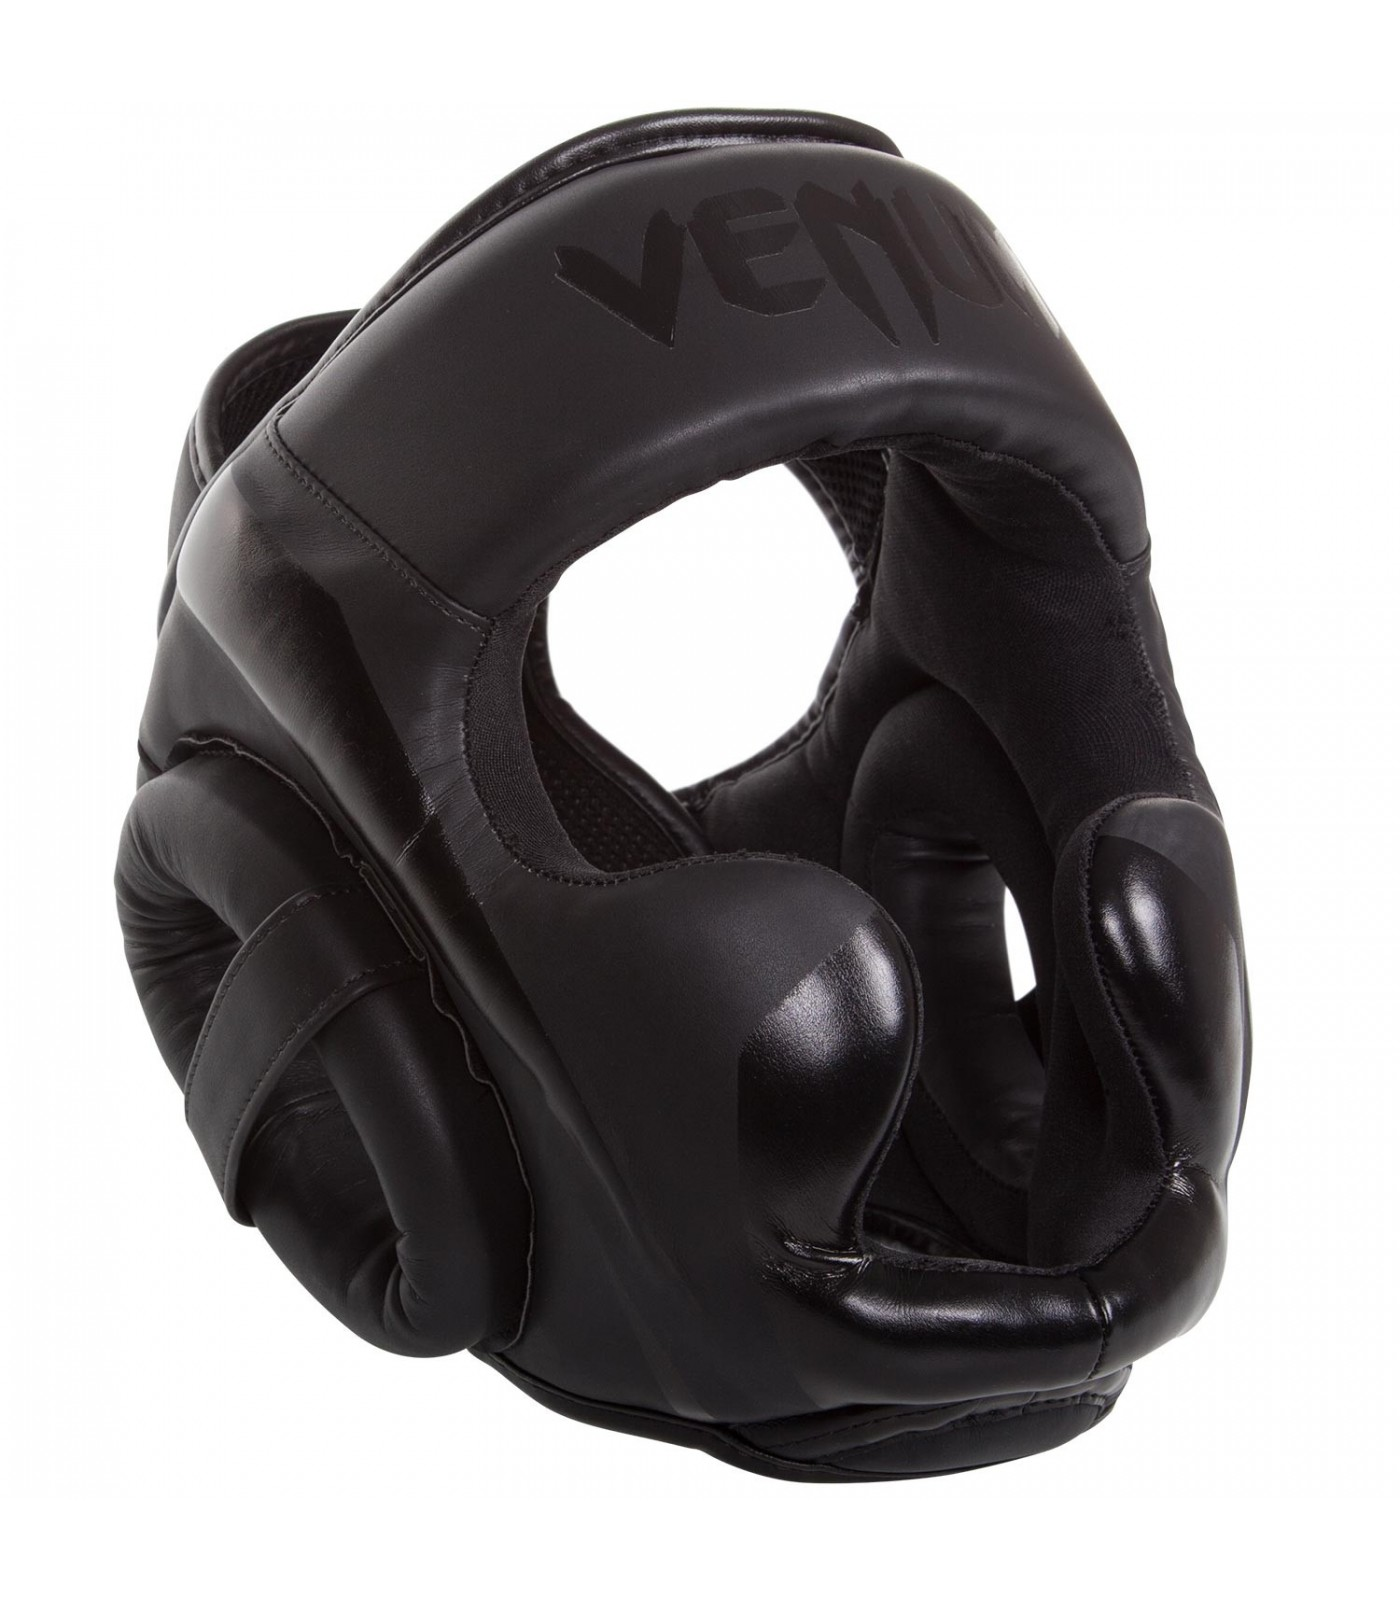 ПРОТЕКТОР ЗА ГЛАВА / КАСКА - VENUM ELITE HEADGEAR BLACK / MATTE​